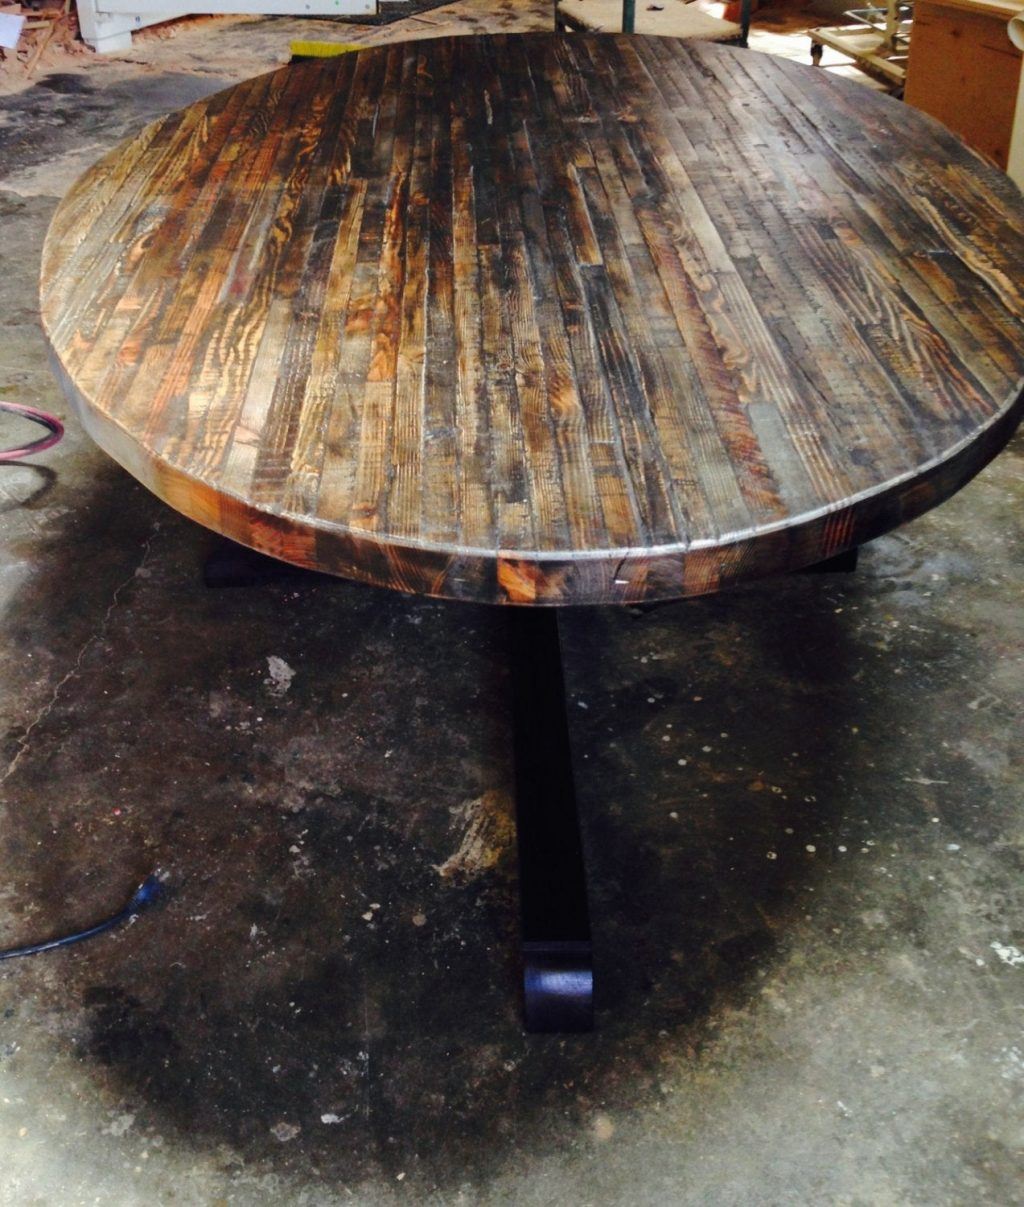 Extra Large Custom Butcher Block Strip Oval Wood Dining Table From Reclaimed Wood